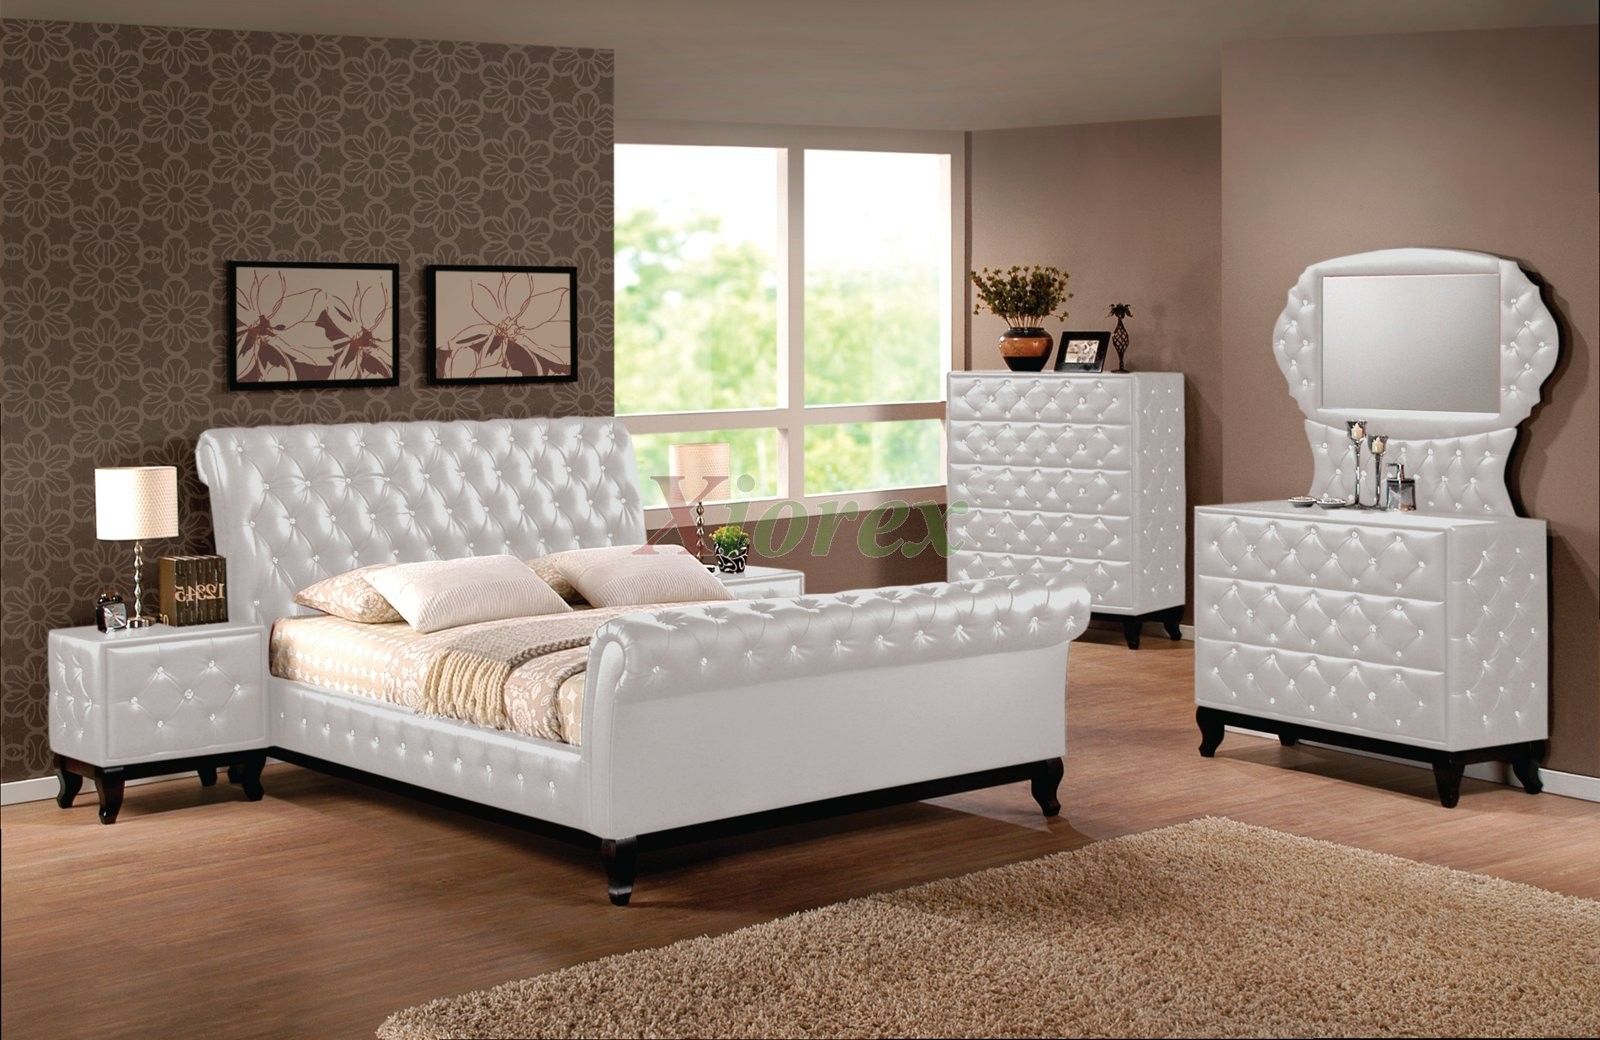 Homelegance Bridgeland Bedroom Set B879-BED-SET at ...